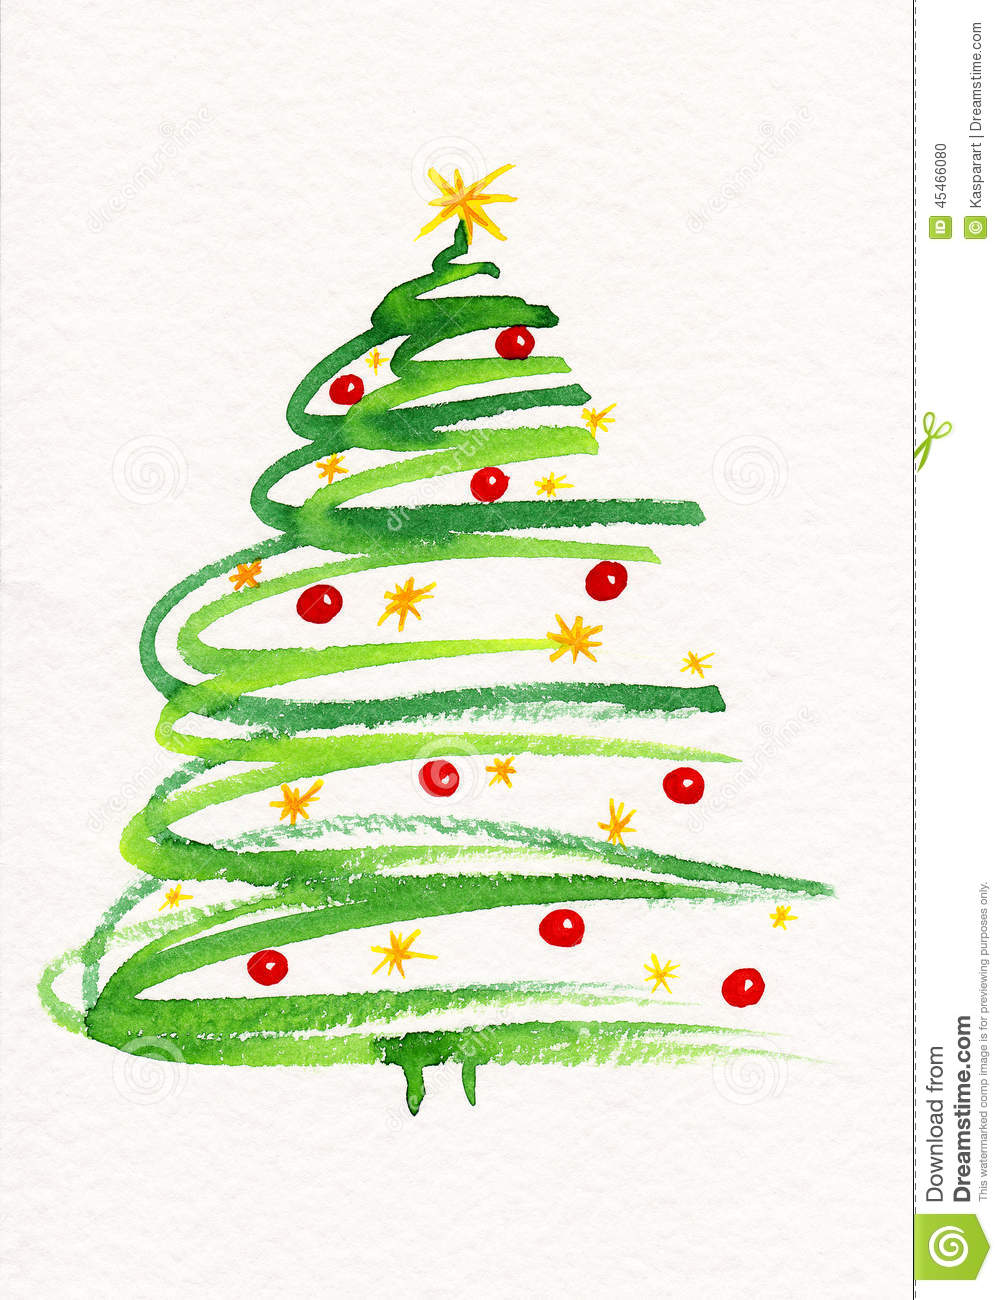 Decorated christmas tree painting stock illustration for Painted christmas cards